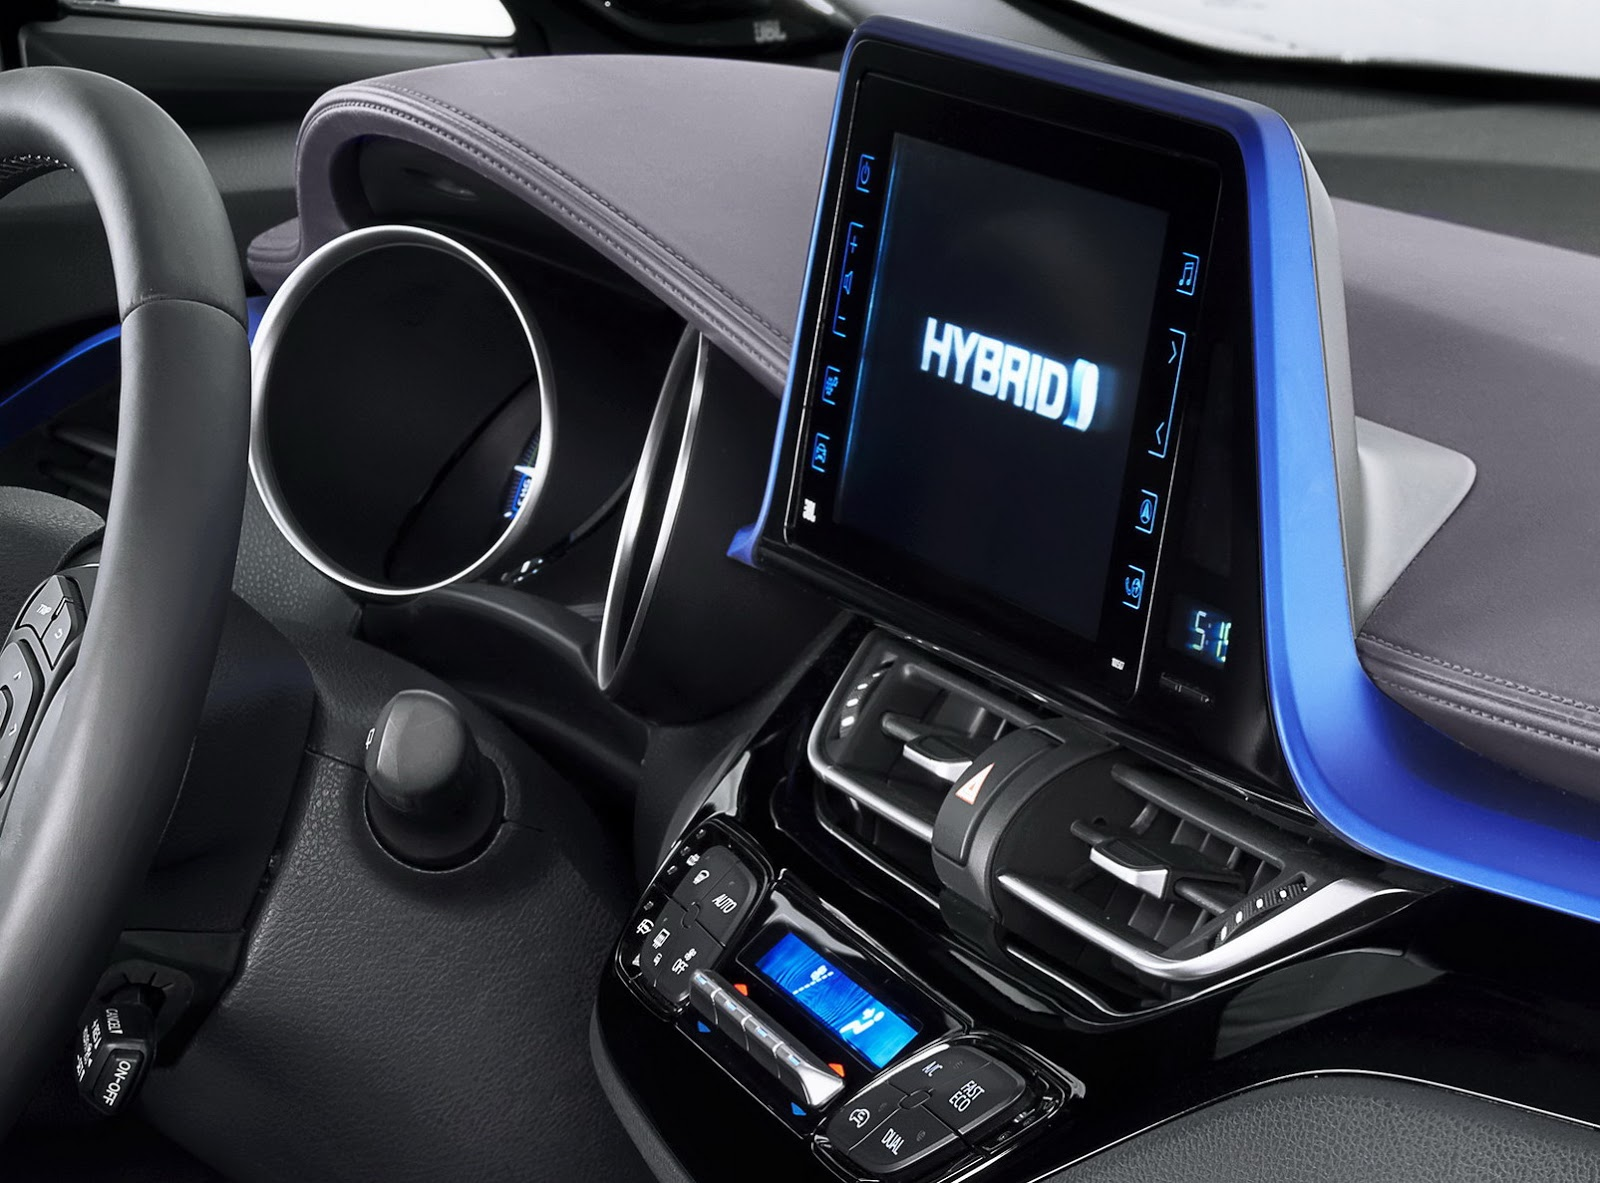 Toyota chr interior 3 uk auto forums for Interieur toyota chr